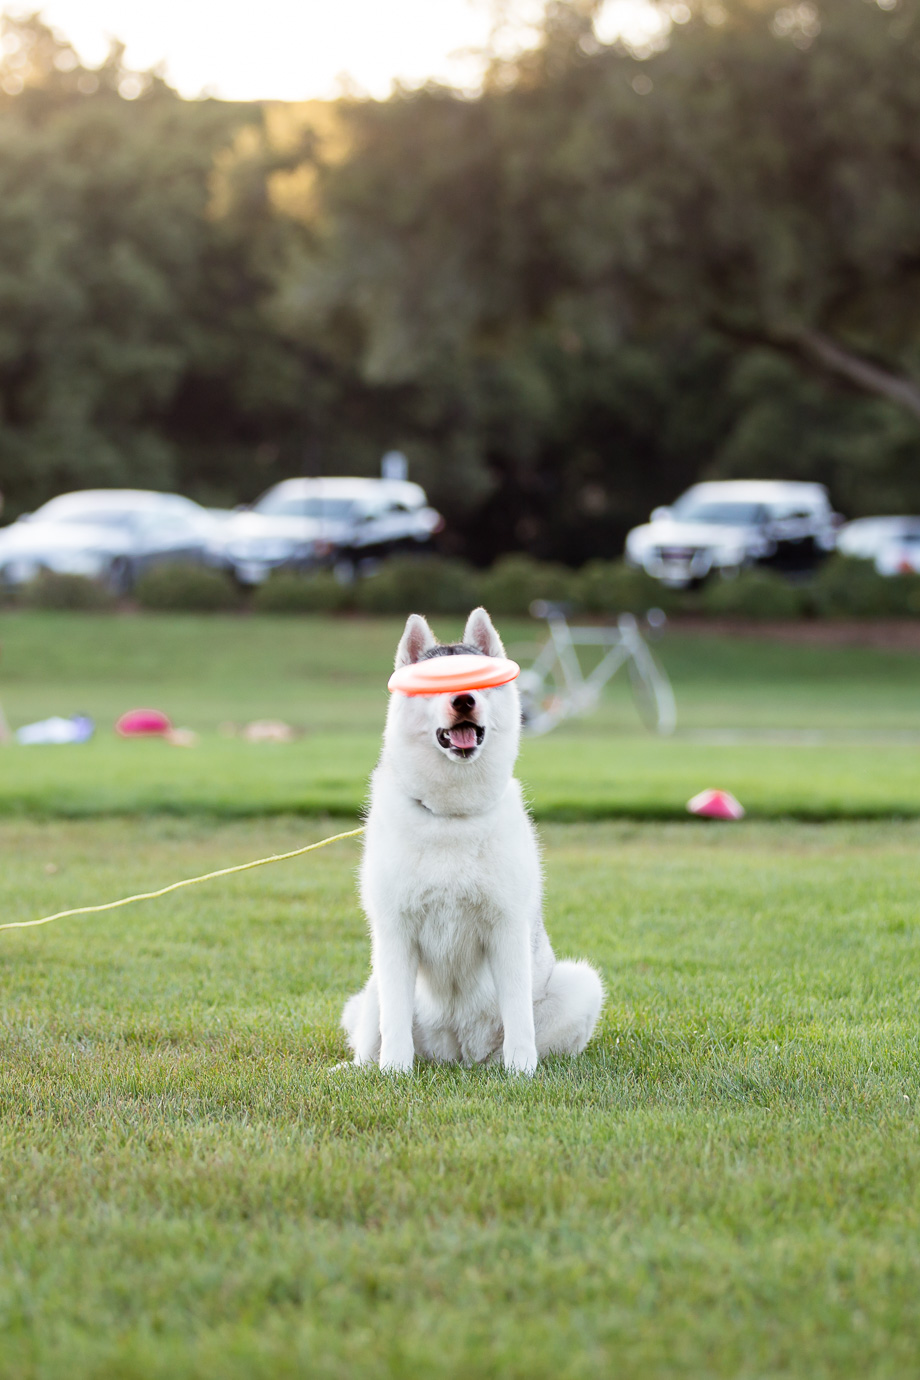 Hilarious moment - husky missed the frisbee!